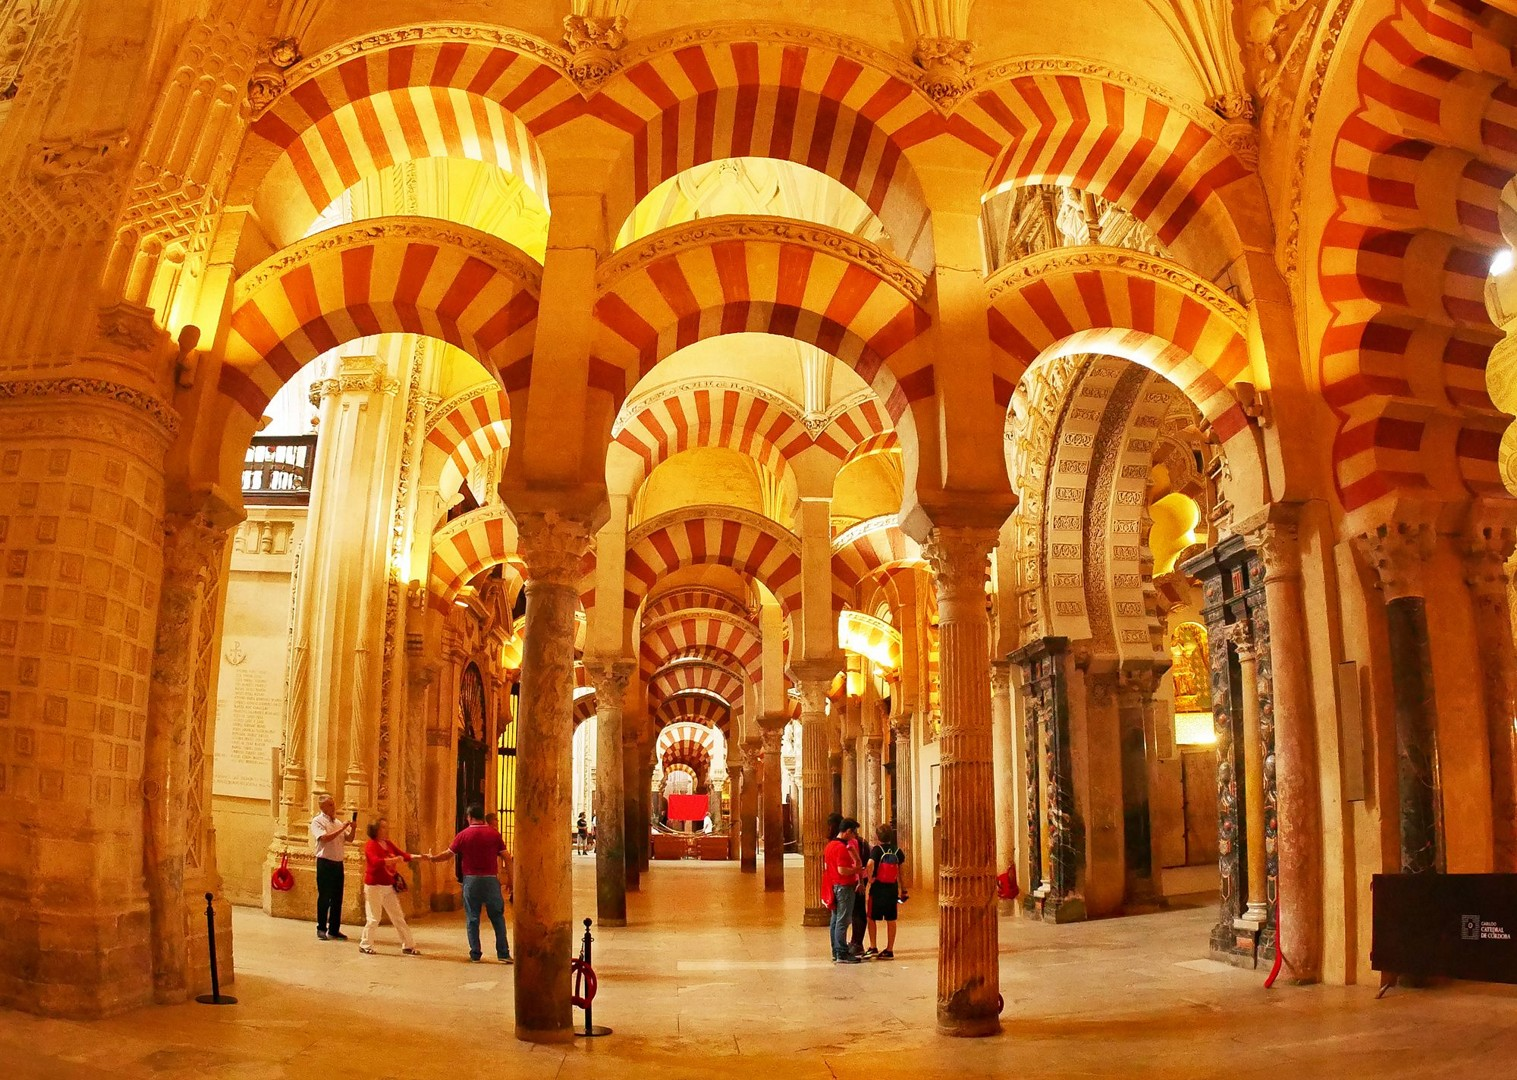 mezquita-guided-leisure-cycling-holiday-southern-spain-granada-to-seville.jpg - Spain - Granada to Seville - Guided Leisure Cycling Holiday - Leisure Cycling